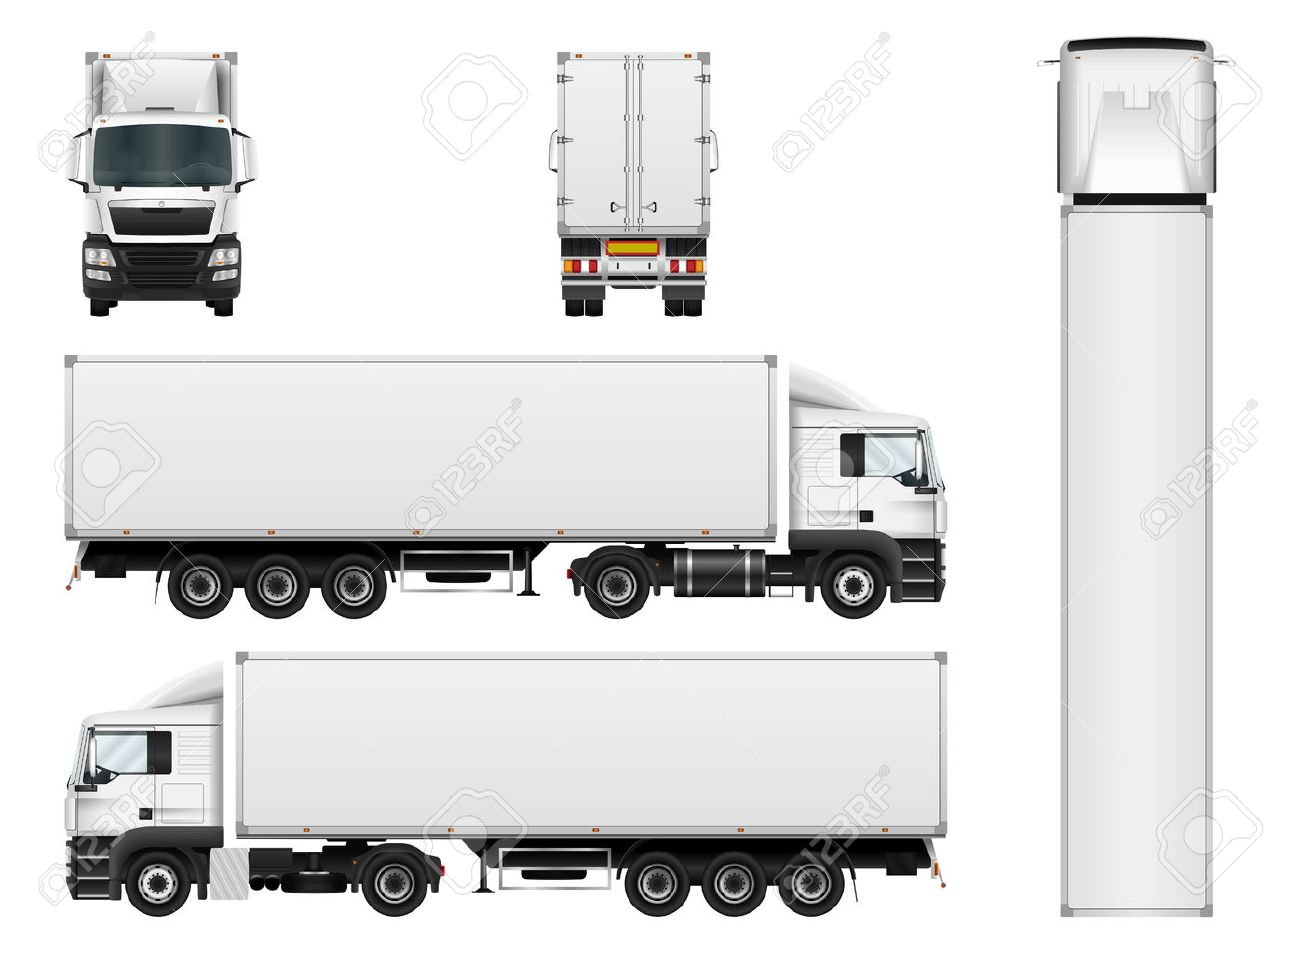 Vector truck trailer template isolated on white background. Cargo delivering vehicle. All elements in groups on separate layers. - 64825349